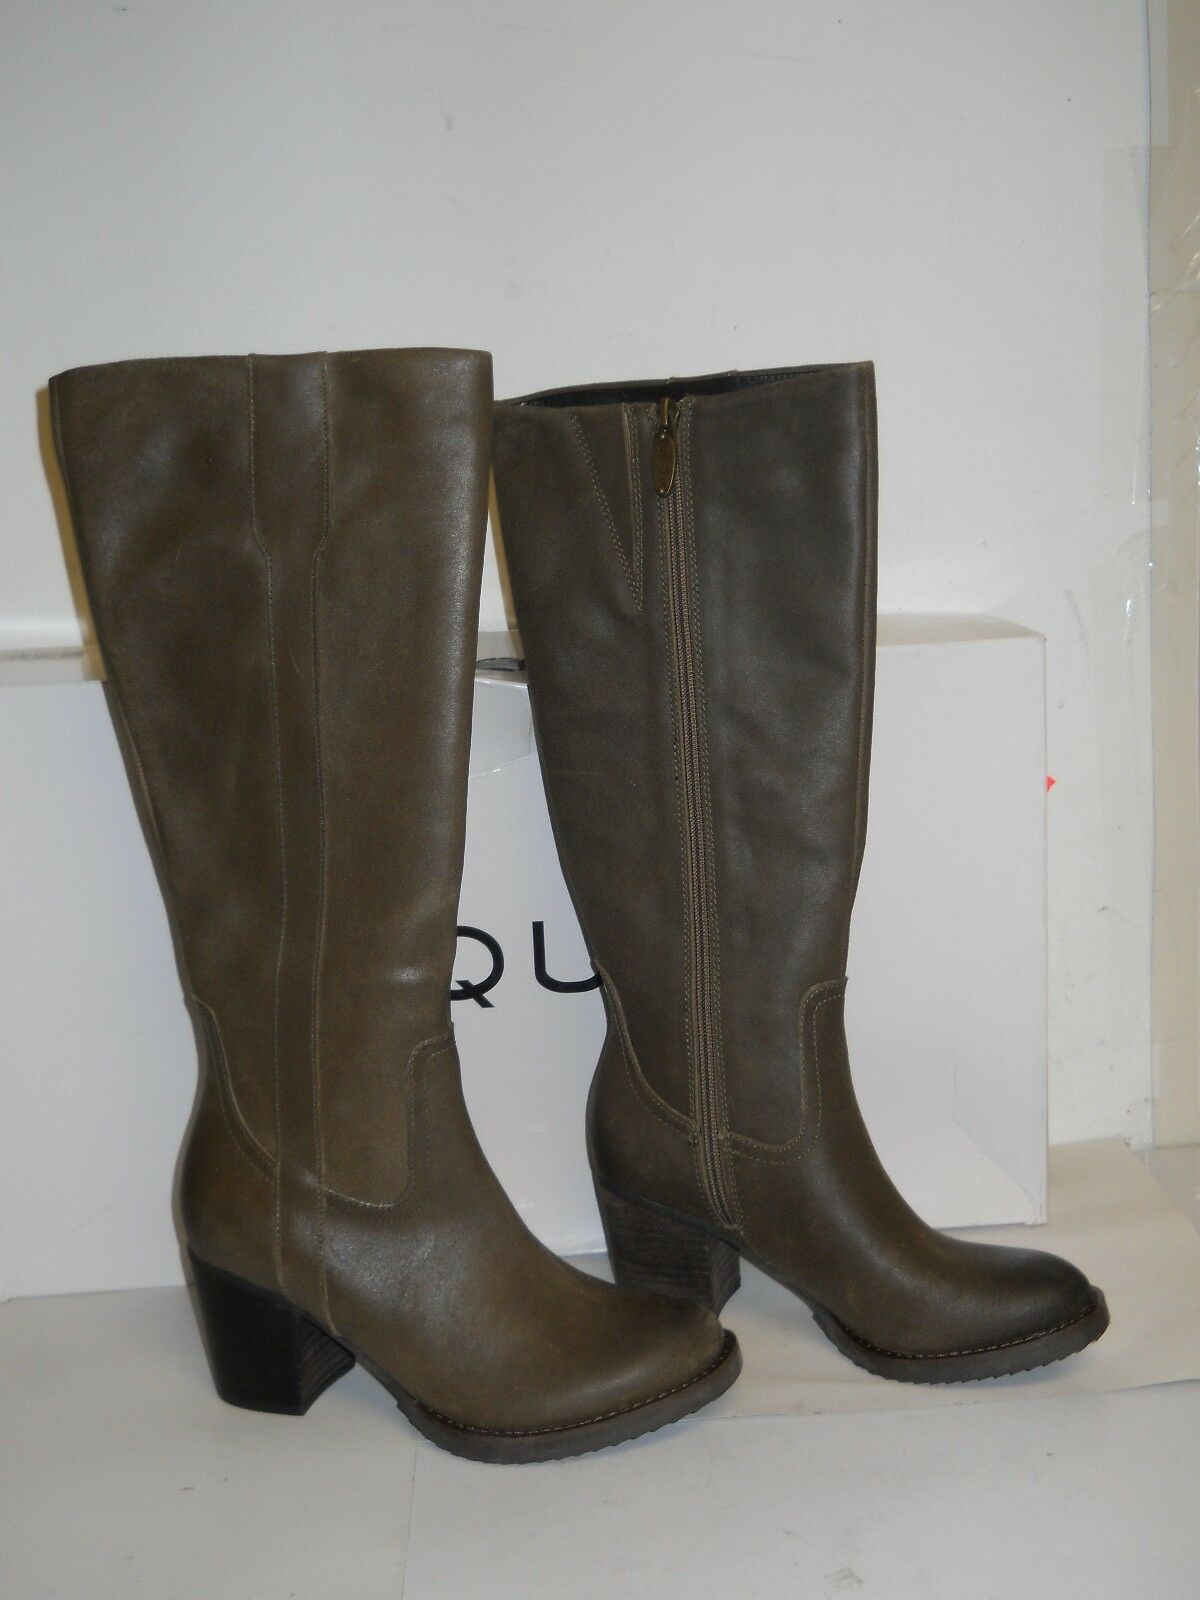 Aqua New Womens Zion Taupe Suede Boots Boots Boots 5.5 M shoes NWB c8d378